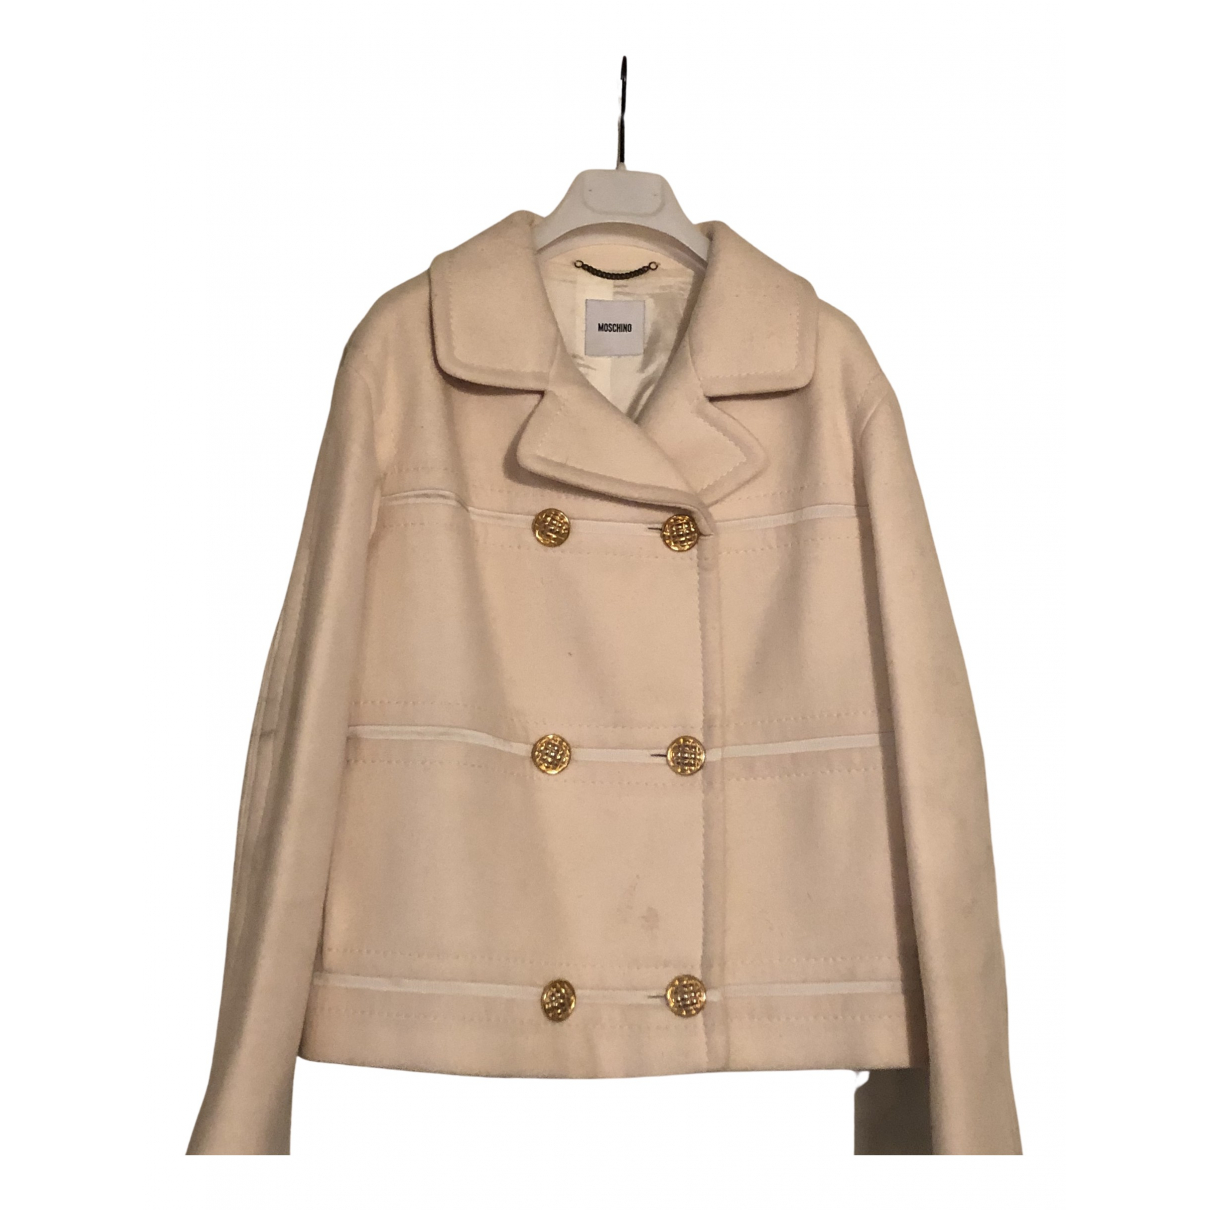 Moschino \N Jacke in  Weiss Wolle